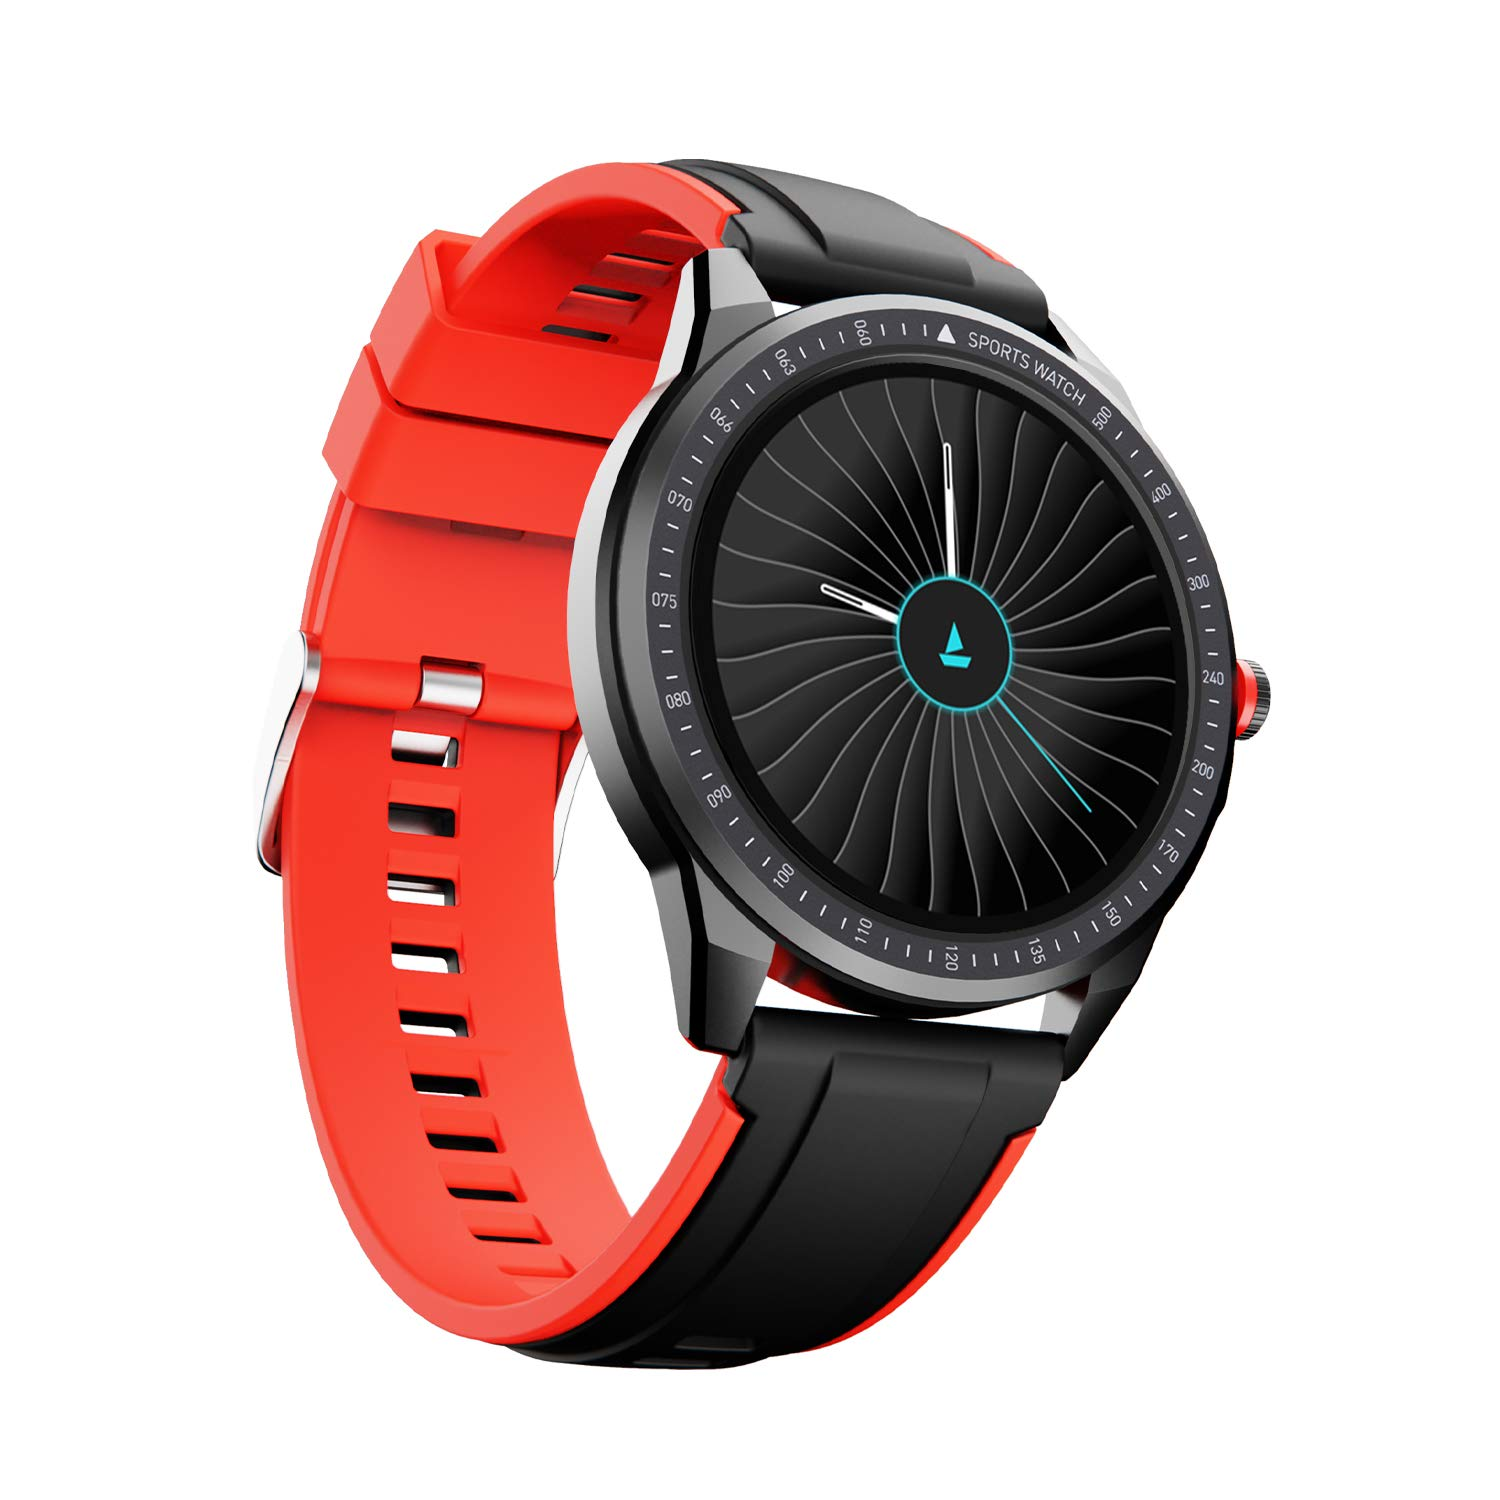 Boat Flash Edition Smartwatch Launched: Features, Specs, Price